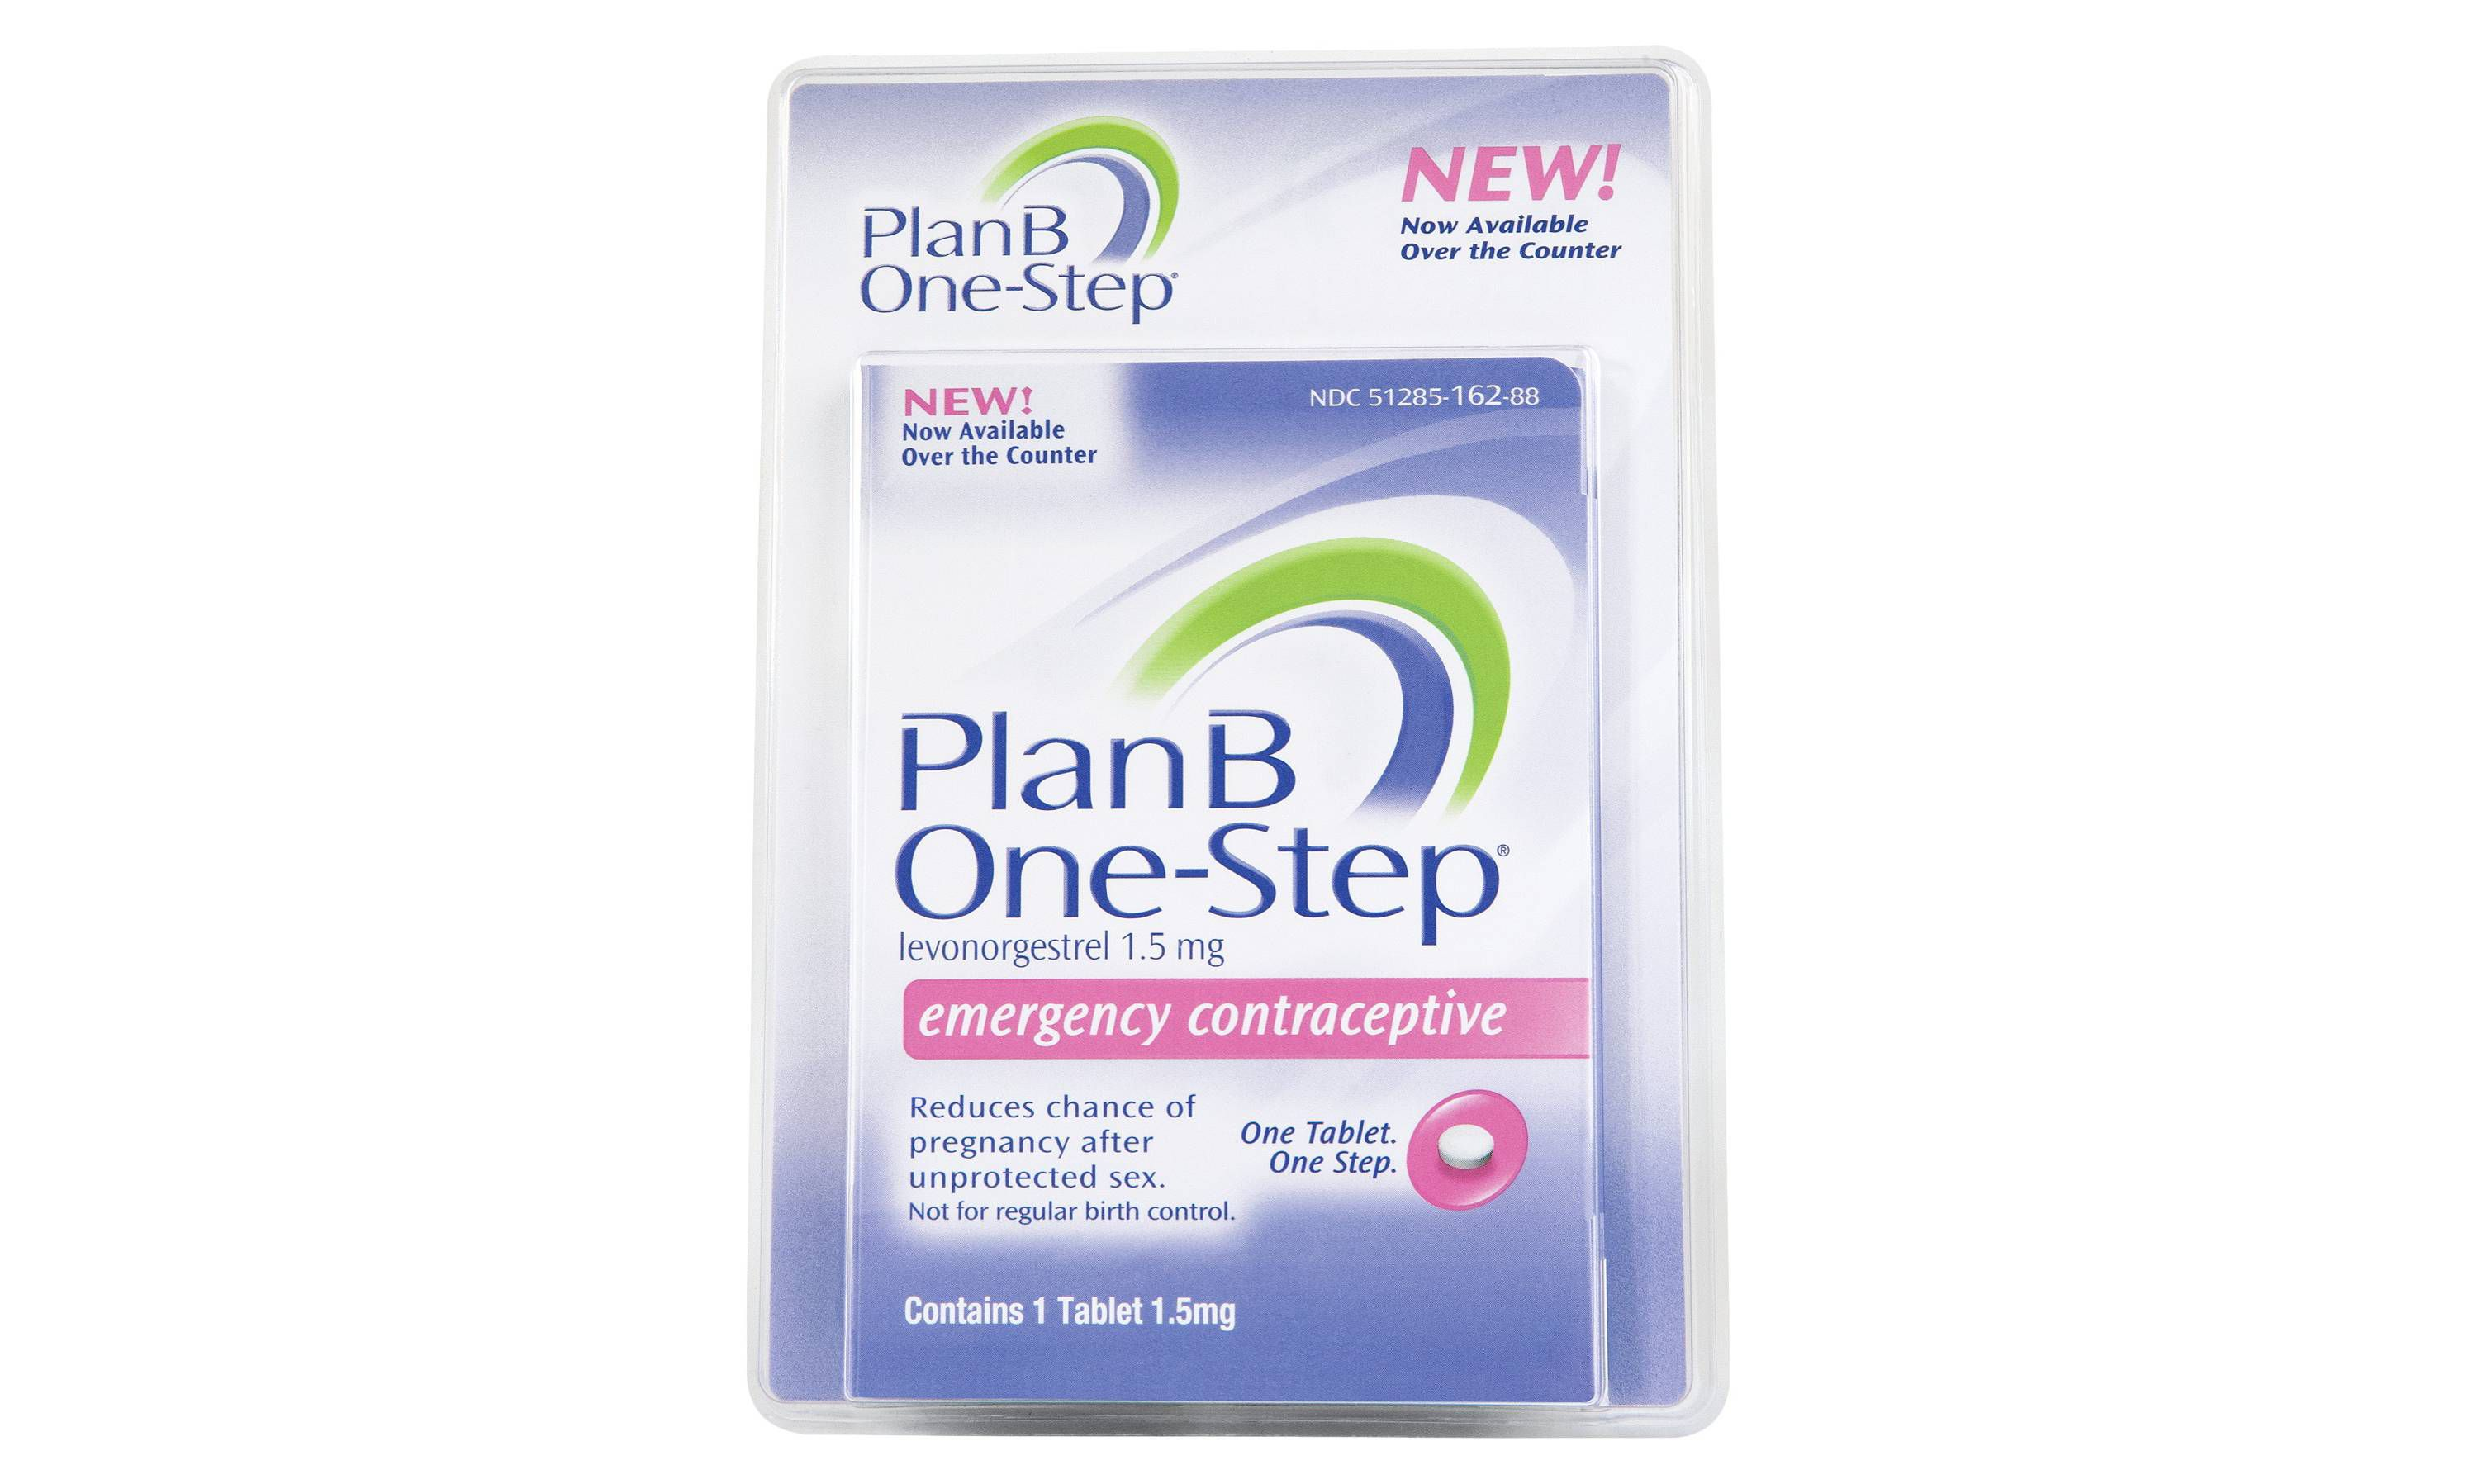 Bearing The Burden Of Controlling Birth Utter Buzz Spinner Anti Karat No Emergency Contraception Ec Pills Are Also More Common Today According To Cdc Between 2006 And 2010 About 11 Percent Or 58 Million Sexually Active